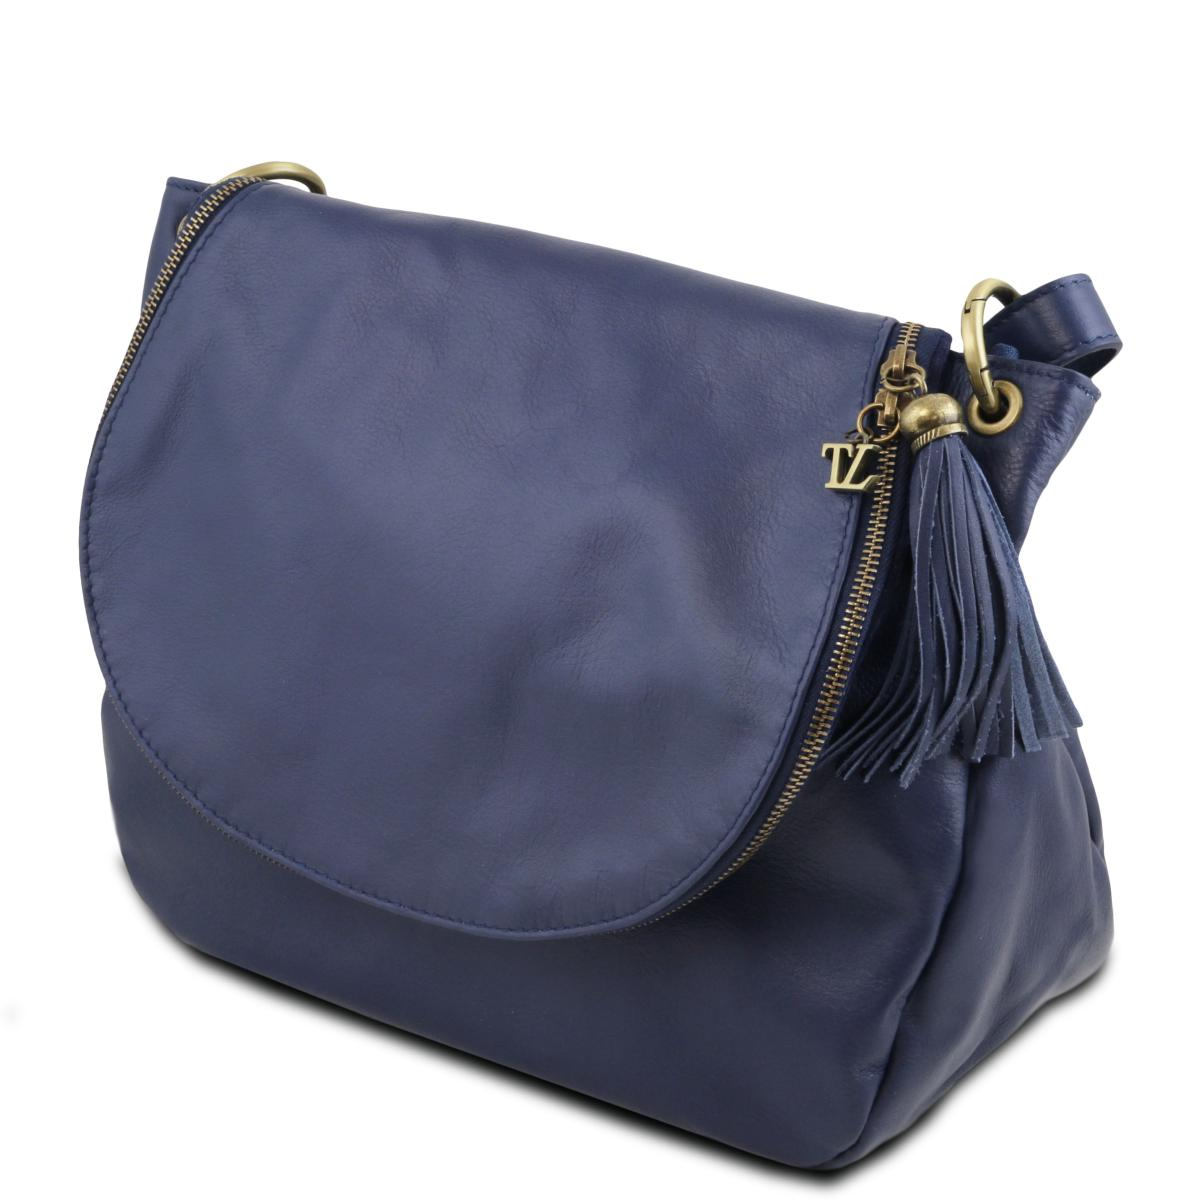 Sac Bandoulière Leather Tuscany Besace Femme Cuir xTUZgnxWR